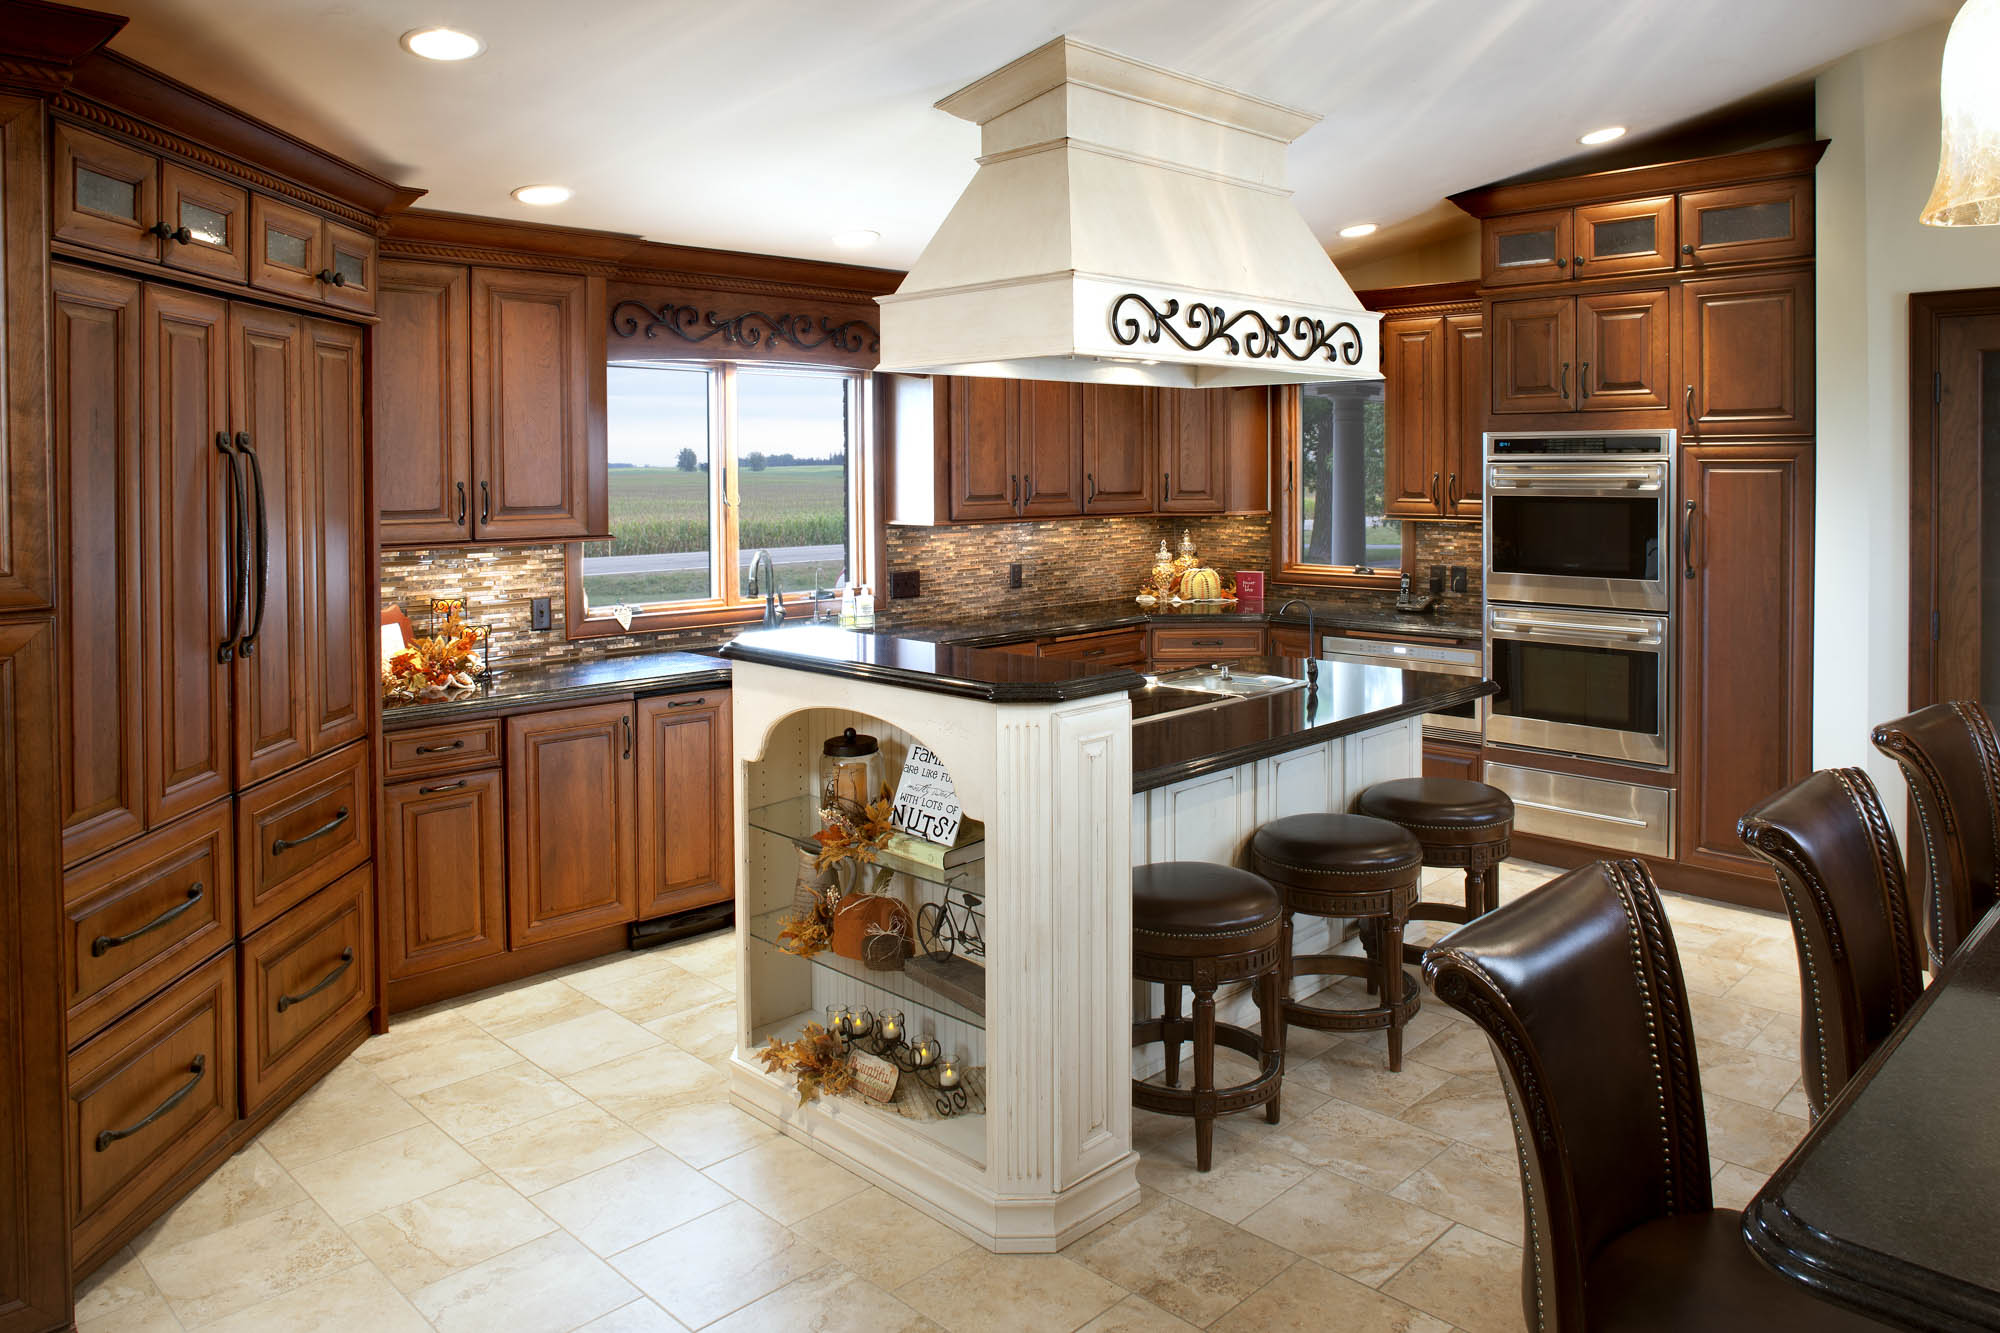 Stained kitchen cabinets in Vintage Autumn by Showplace Cabinetry - view 2